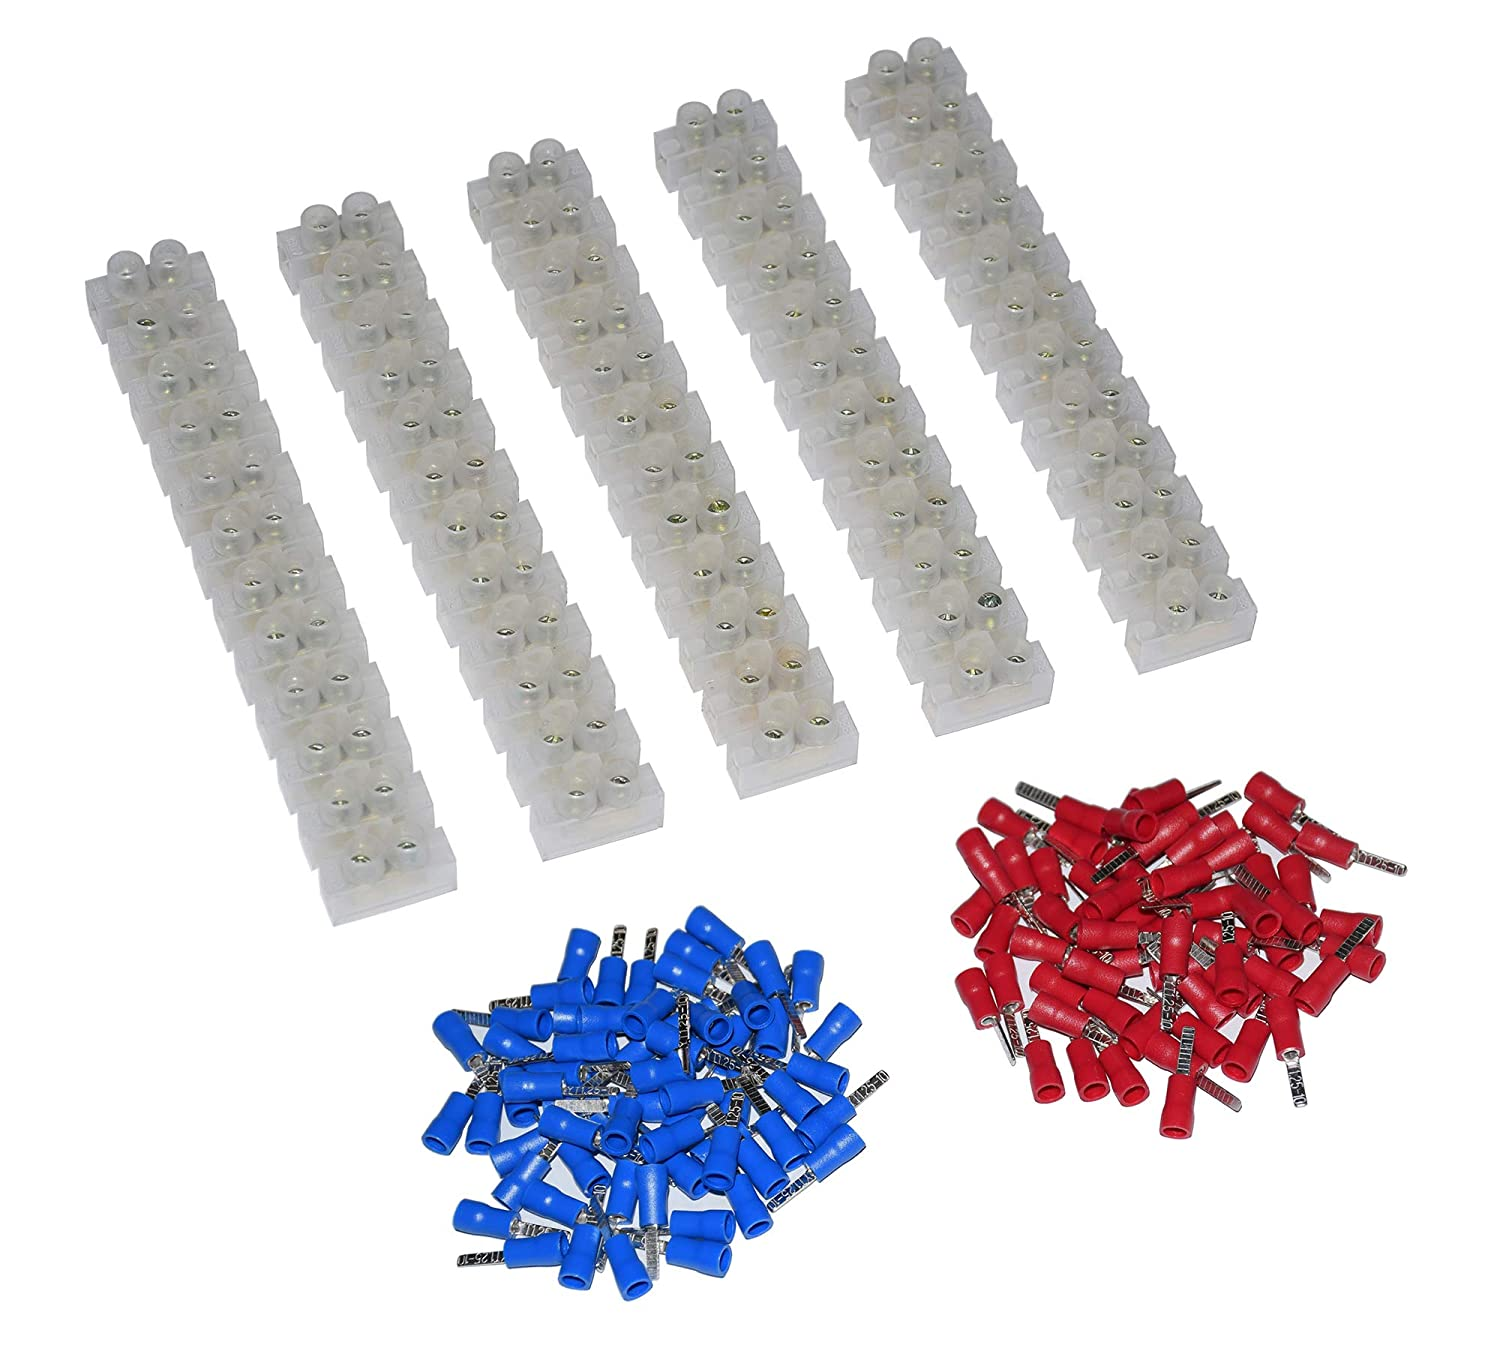 5Pcs 2 Rows 12P Wire Connector Screw Terminal Barrier Block 300V 10A Insulated Electrical Wire Connector 22 16 AWG Red Blue 120 Pcs